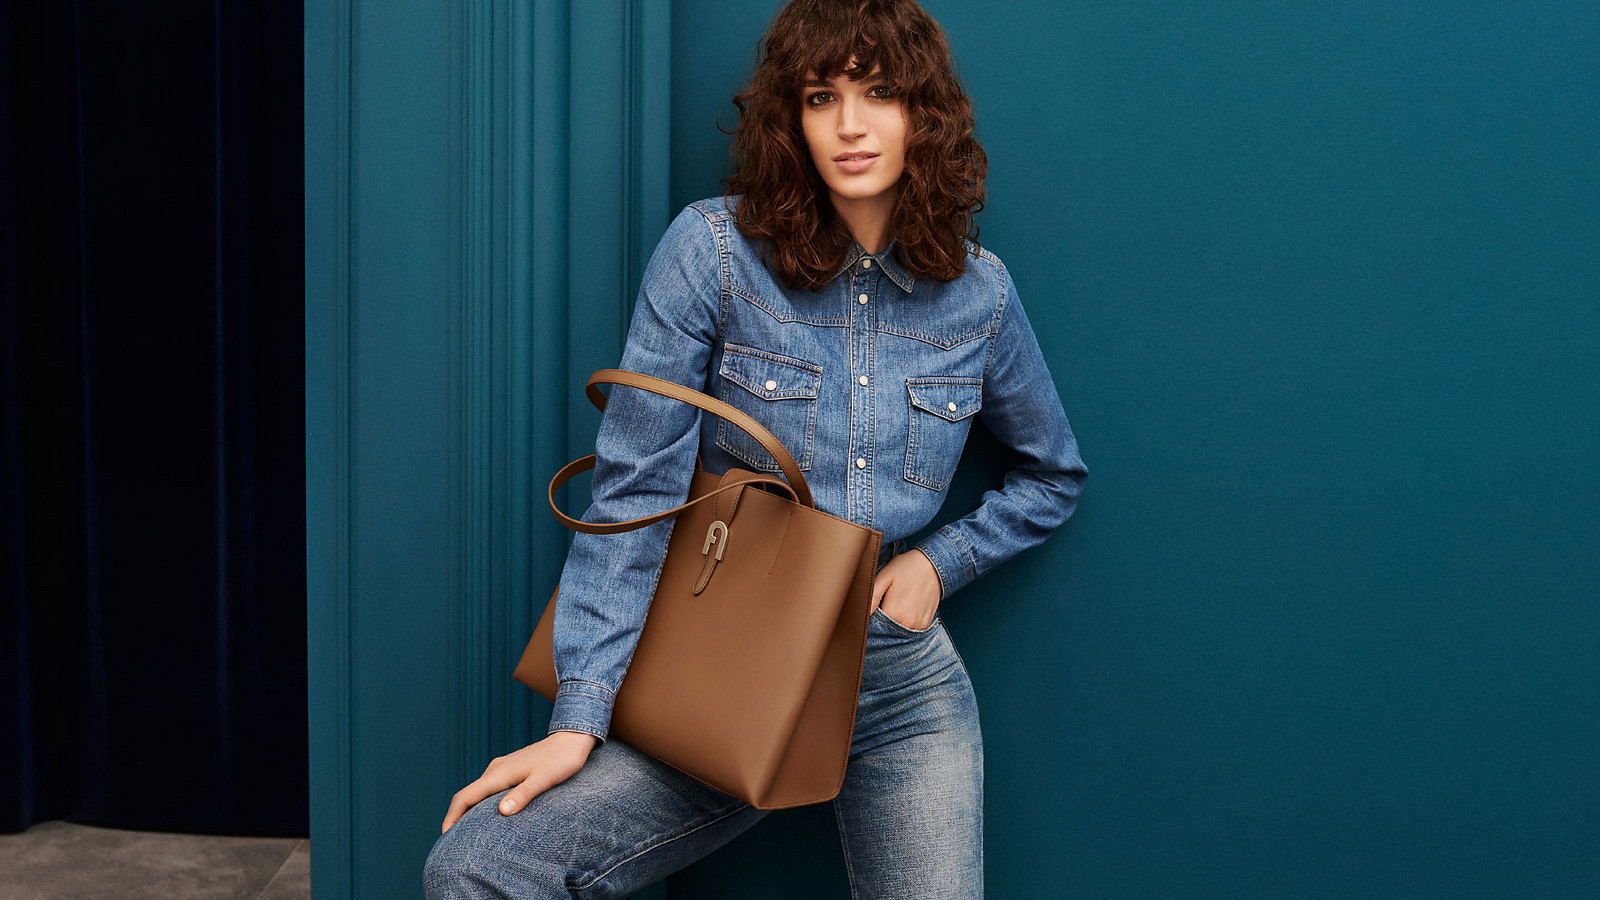 The model and actress Greta Ferro is staning in front of a blue wall. She is wearing a denin shirt with denim heans and holding the new Furla Sofia Tote bag on the knee.